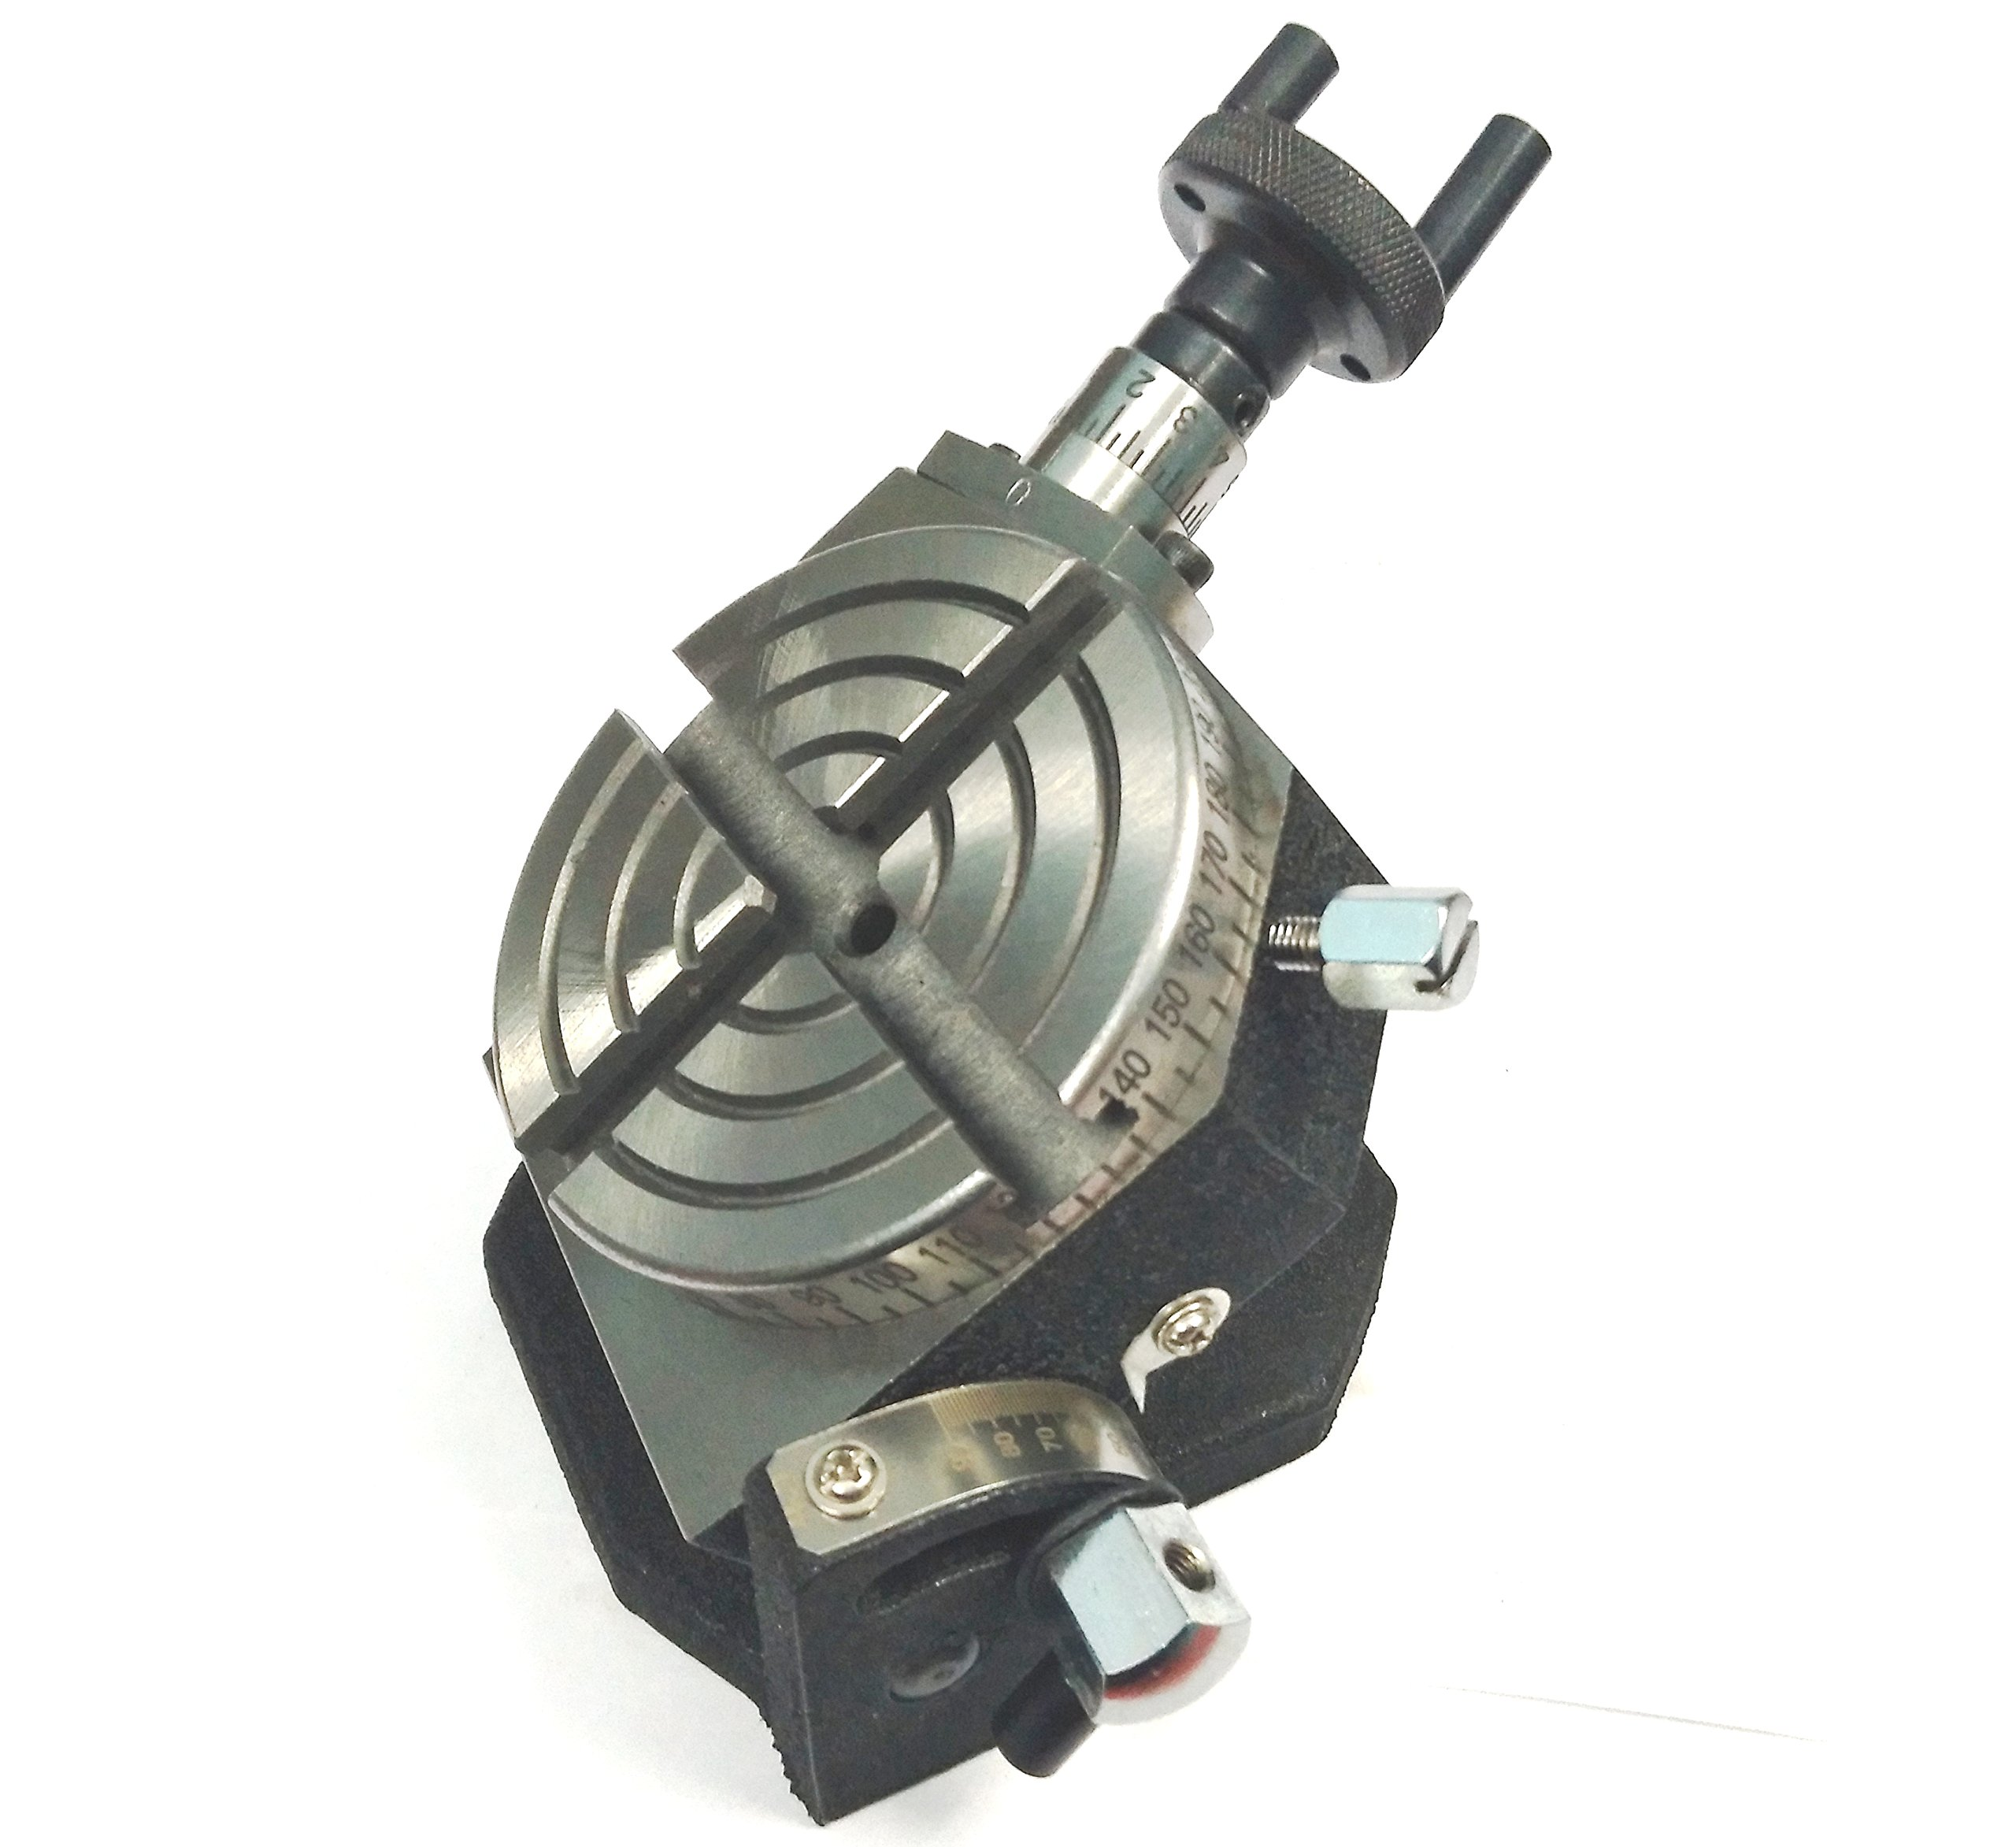 New 3'' Inches (75 mm) Quality Tilting Rotary Table for Milling Machines